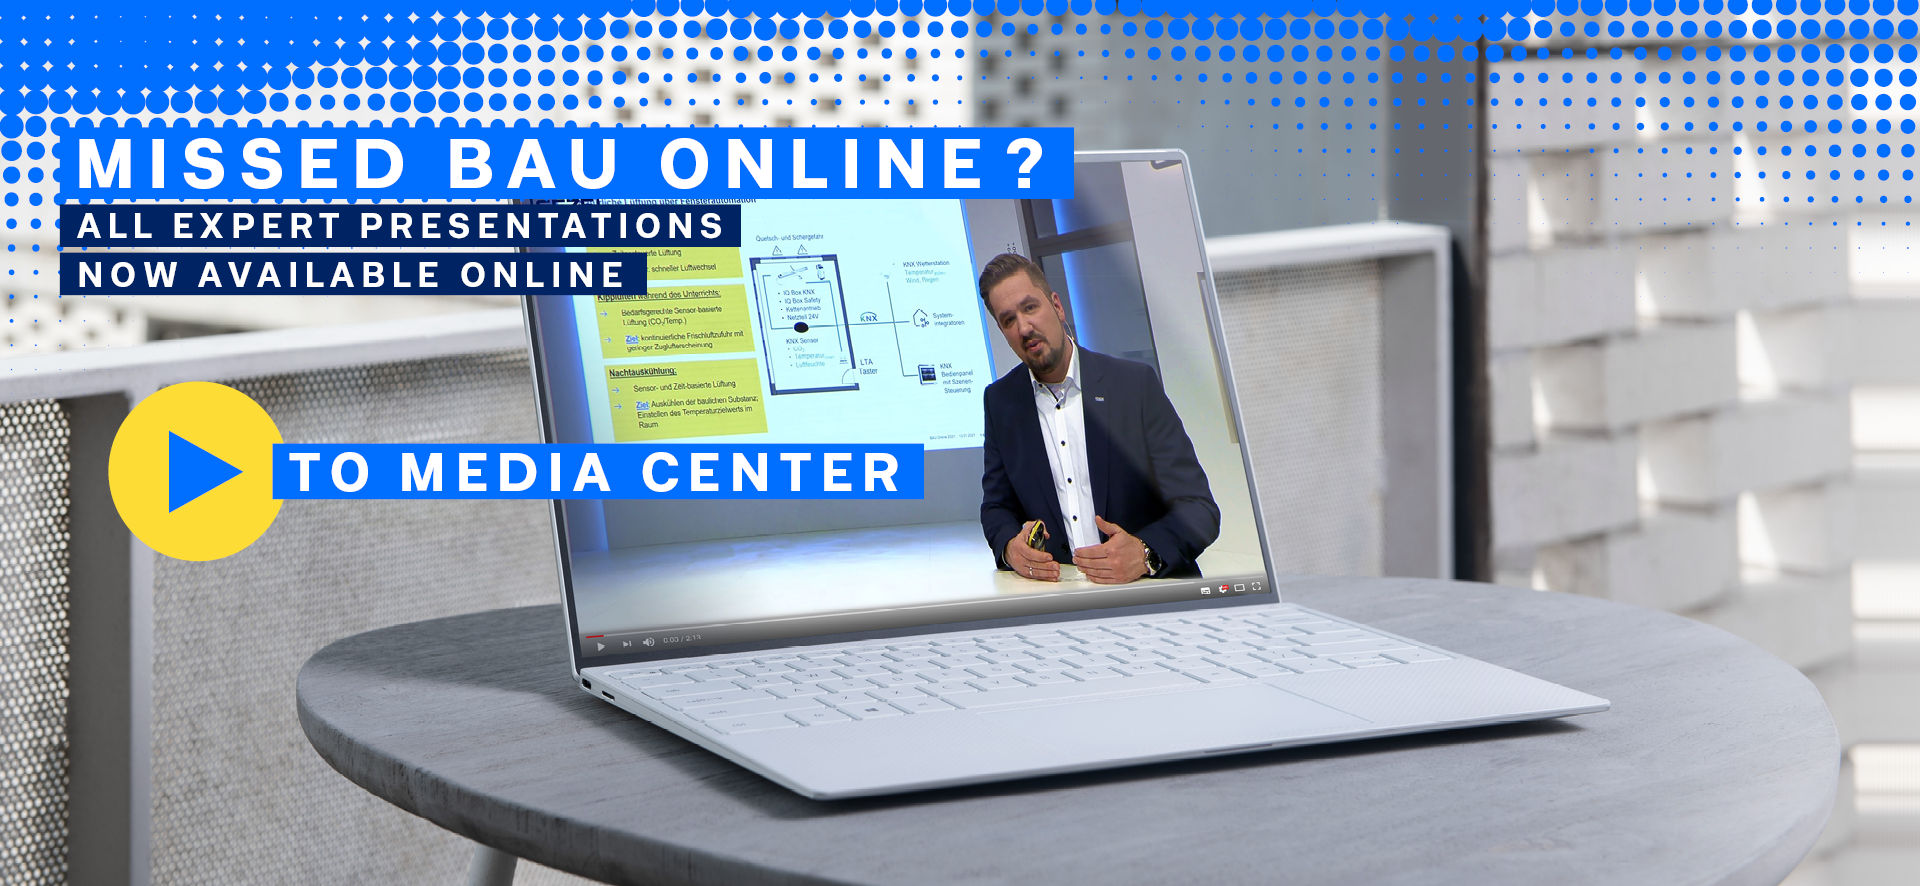 We broadcast informative expert lectures during the BAU online trade fair. You can find recordings of all talks and presentations in our media center.